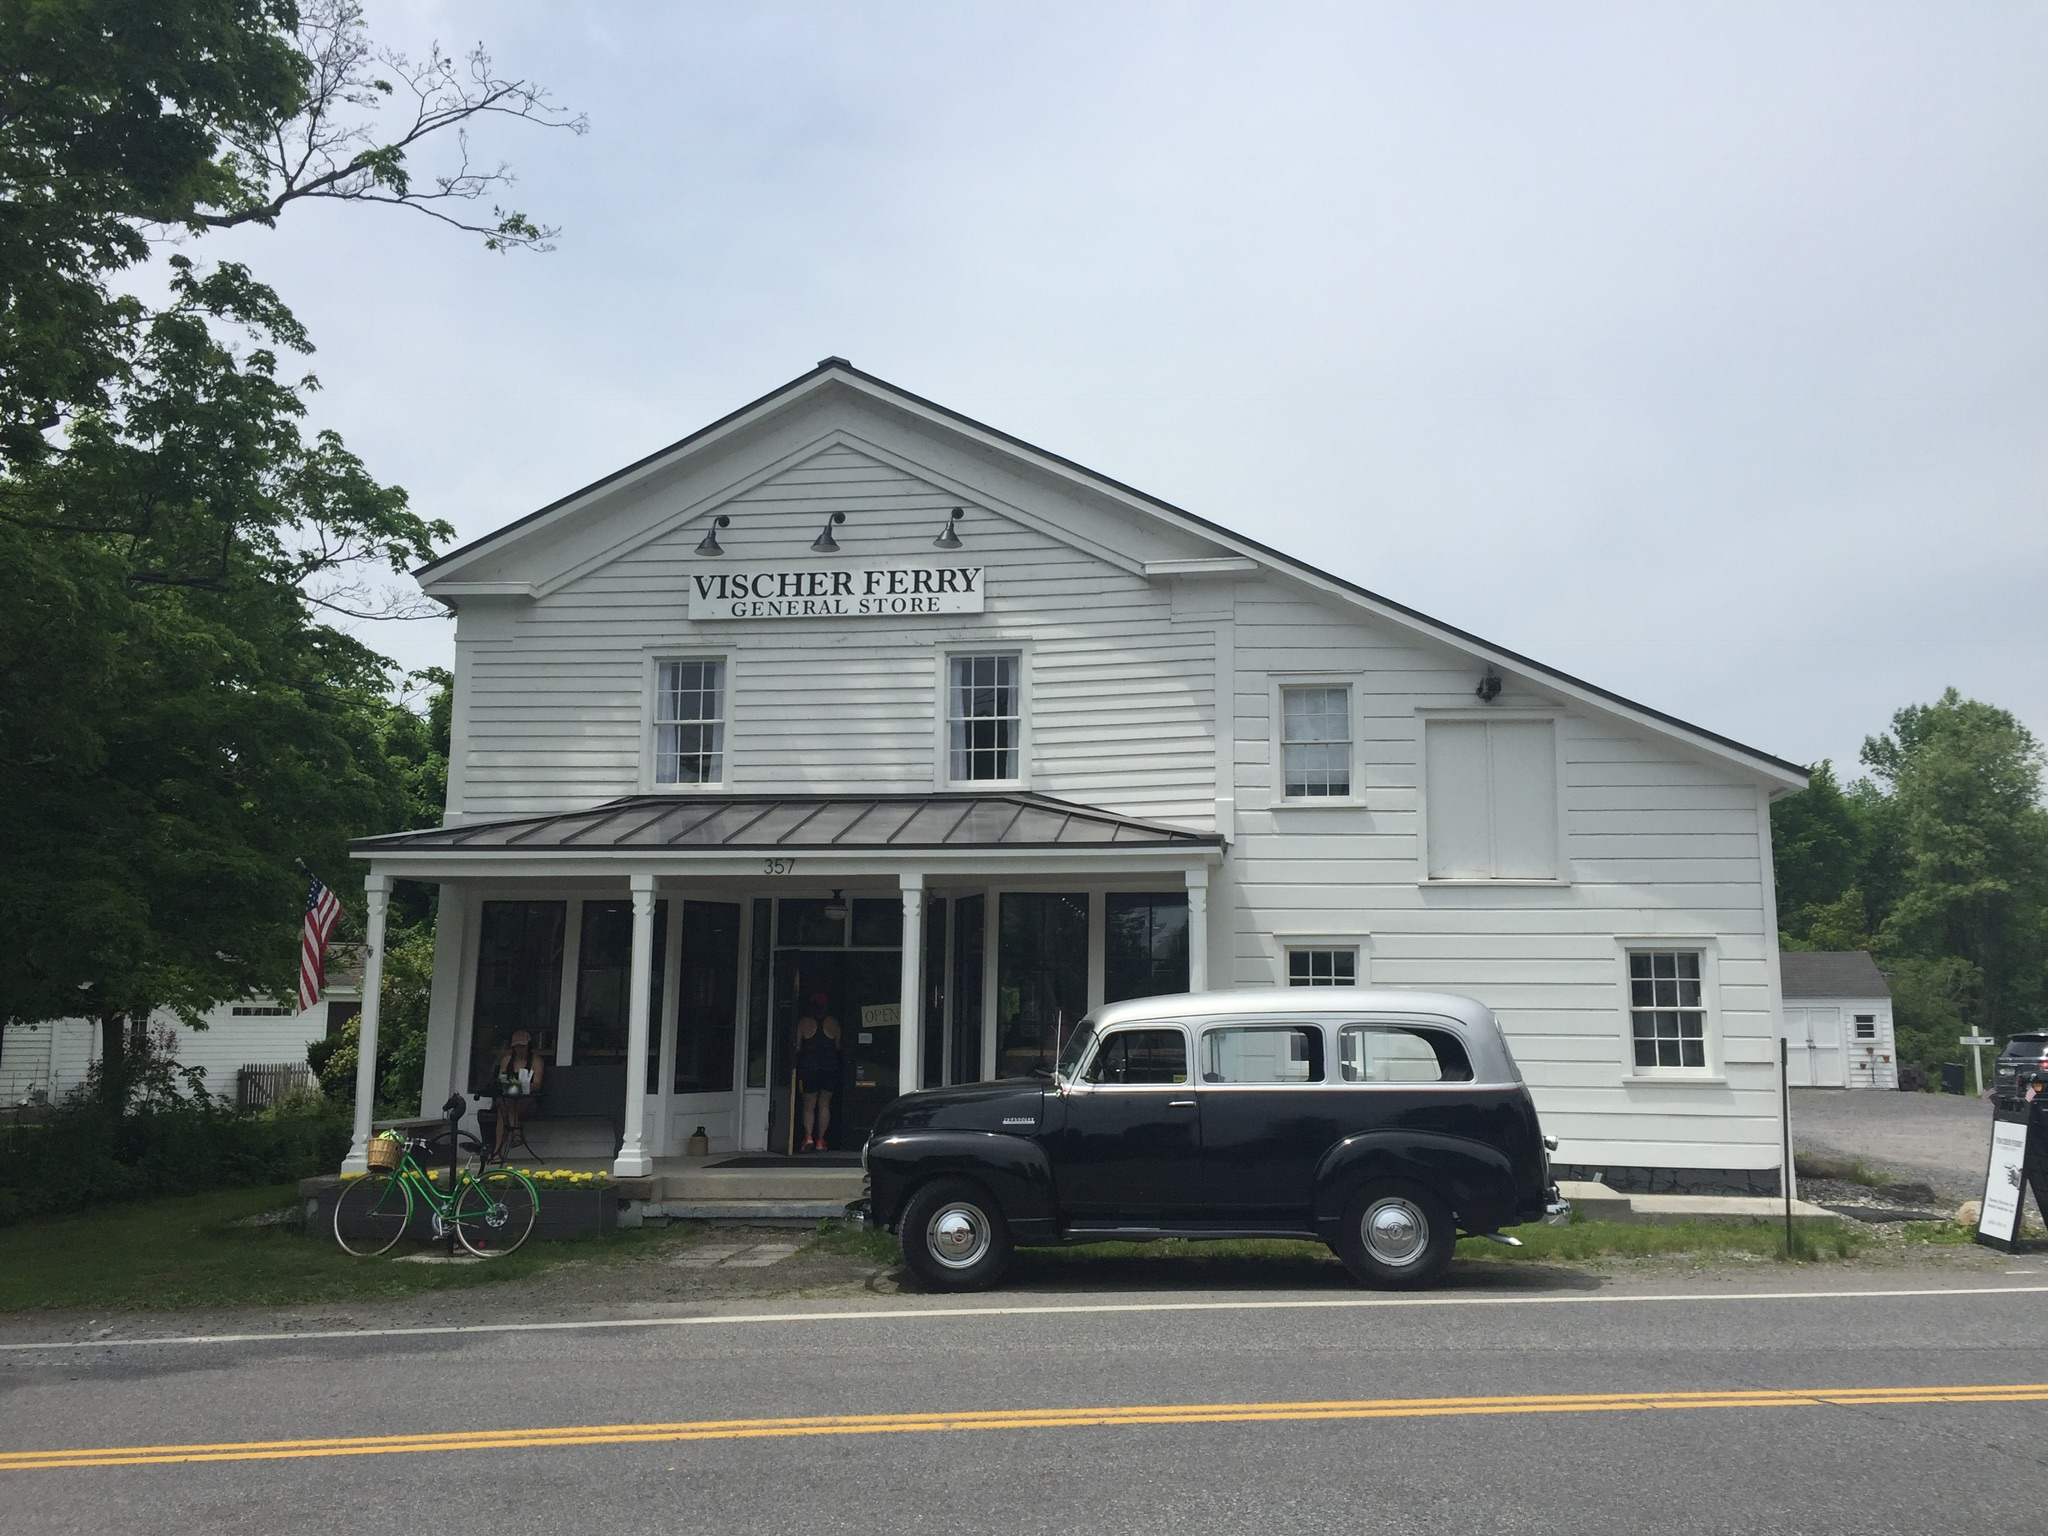 Vischer Ferry General Store